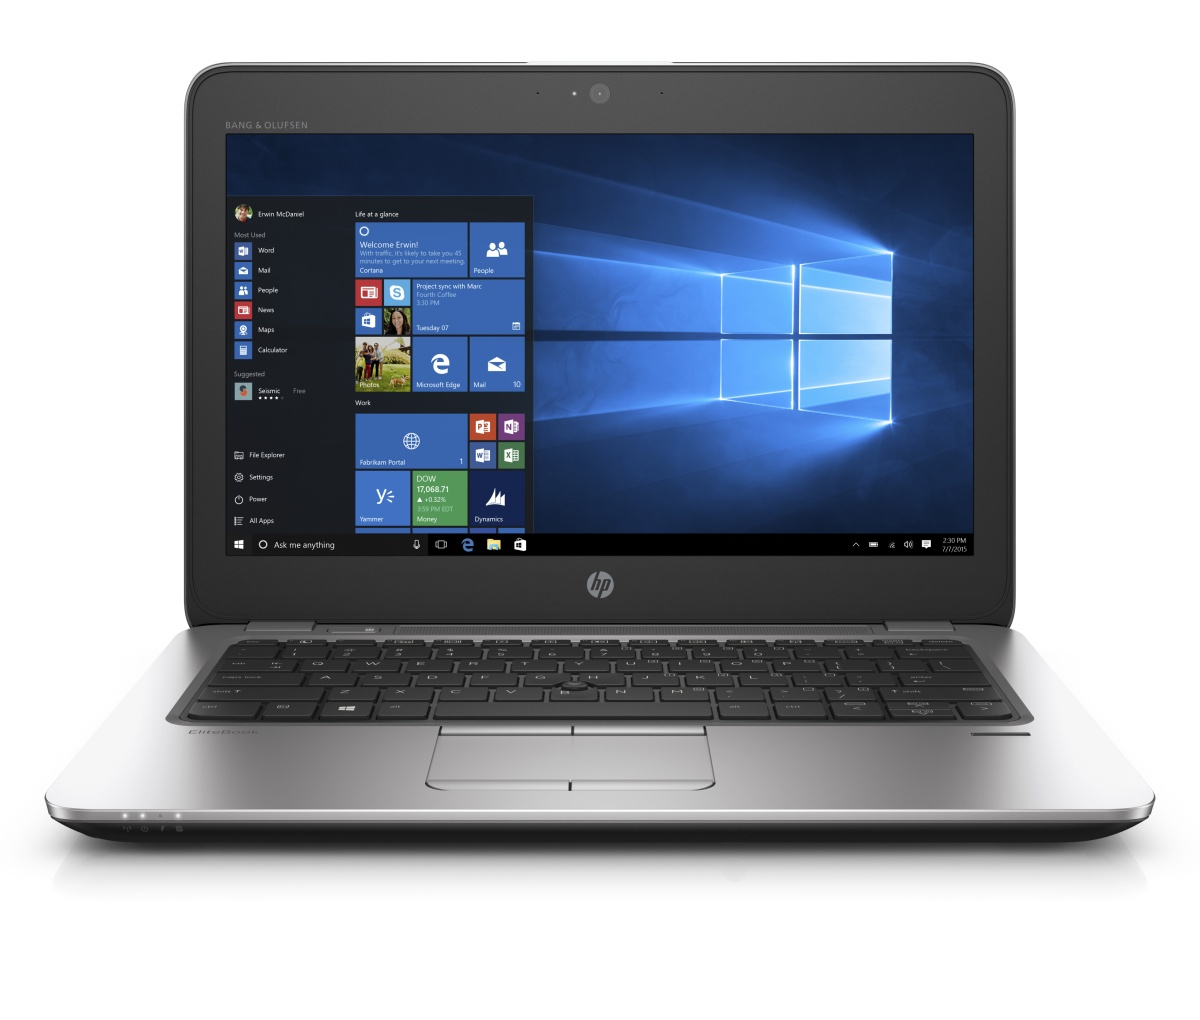 "HP EliteBook 820 G3 i5-6200U/4GB/256GB SSD/12.5"" FHD/backlit keyb /Win 10 Pro downgraded"